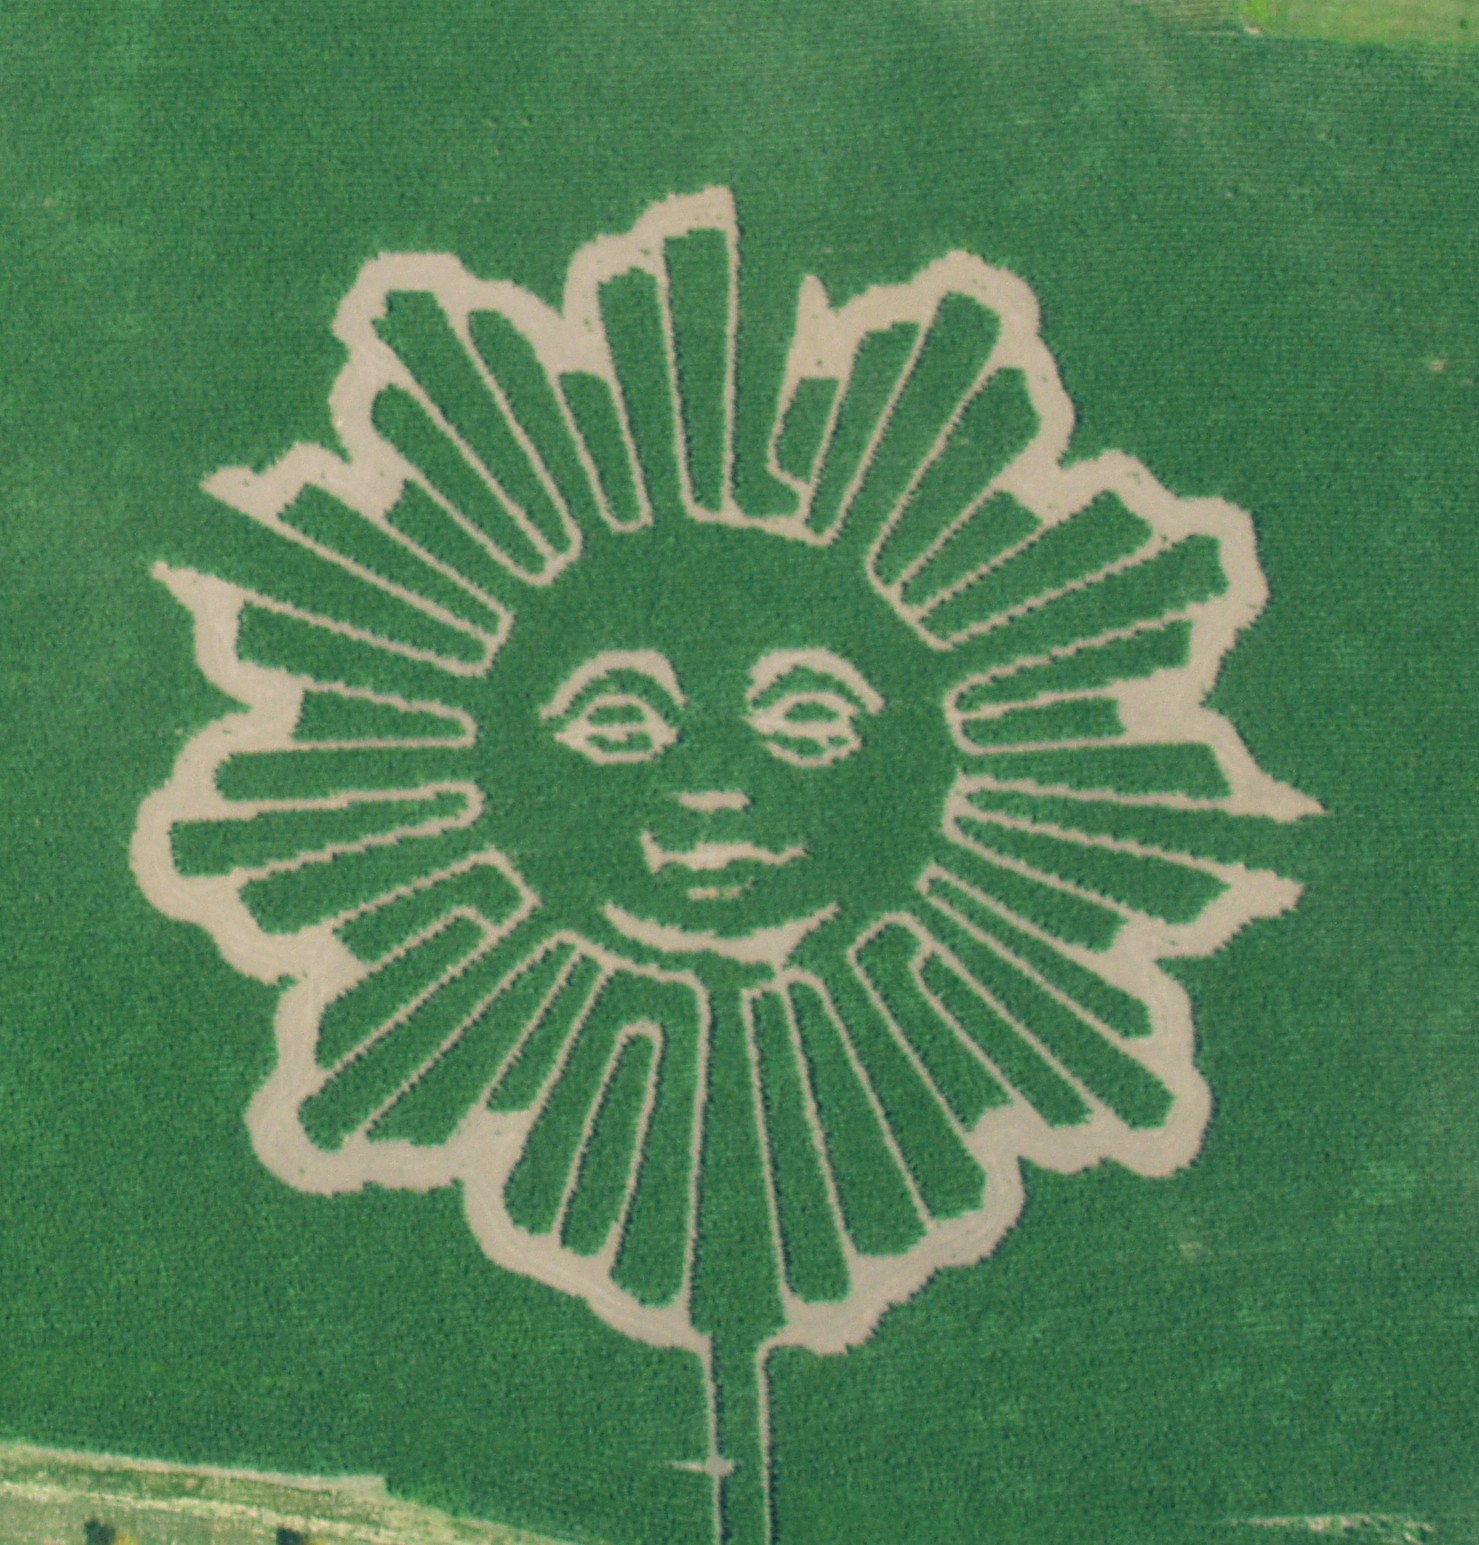 2013 5-Acre Corn Maze - CBS Sunday Morning Show Logo